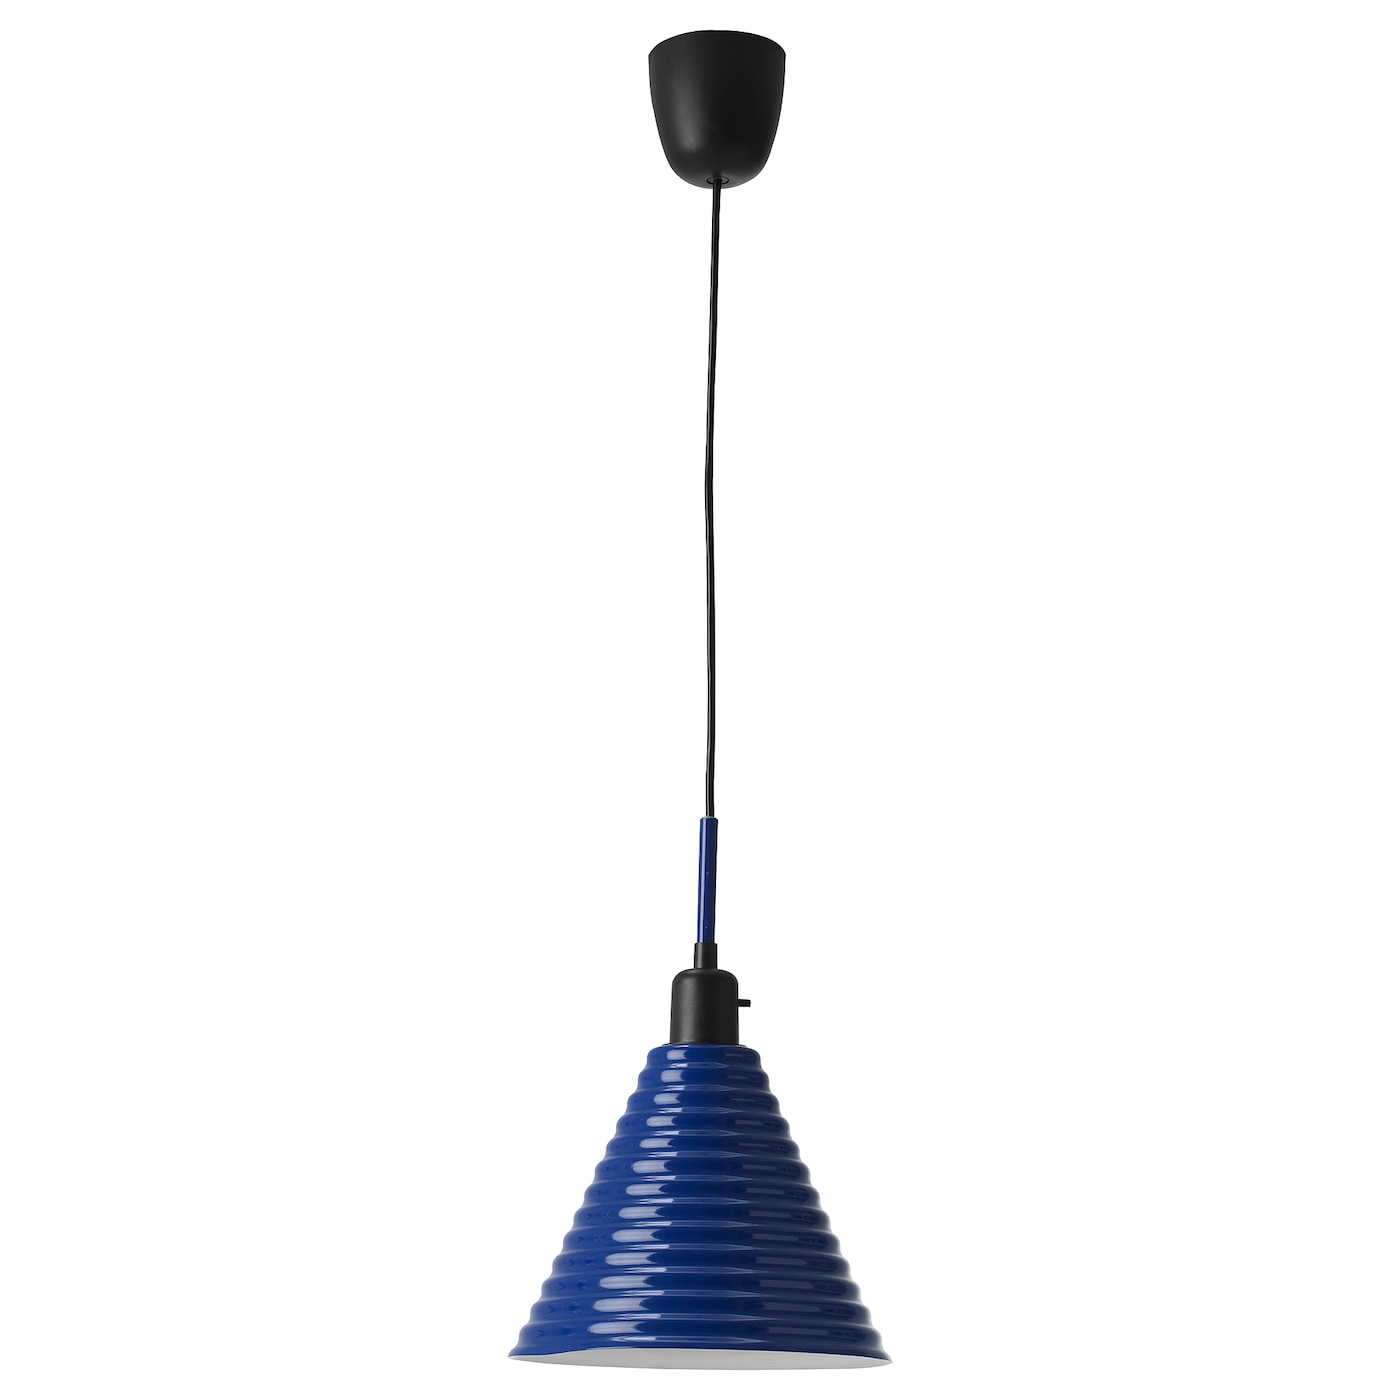 IKEA FÄRGSTARK pendant lamp Can be switched on and off with a switch on top of the shade.